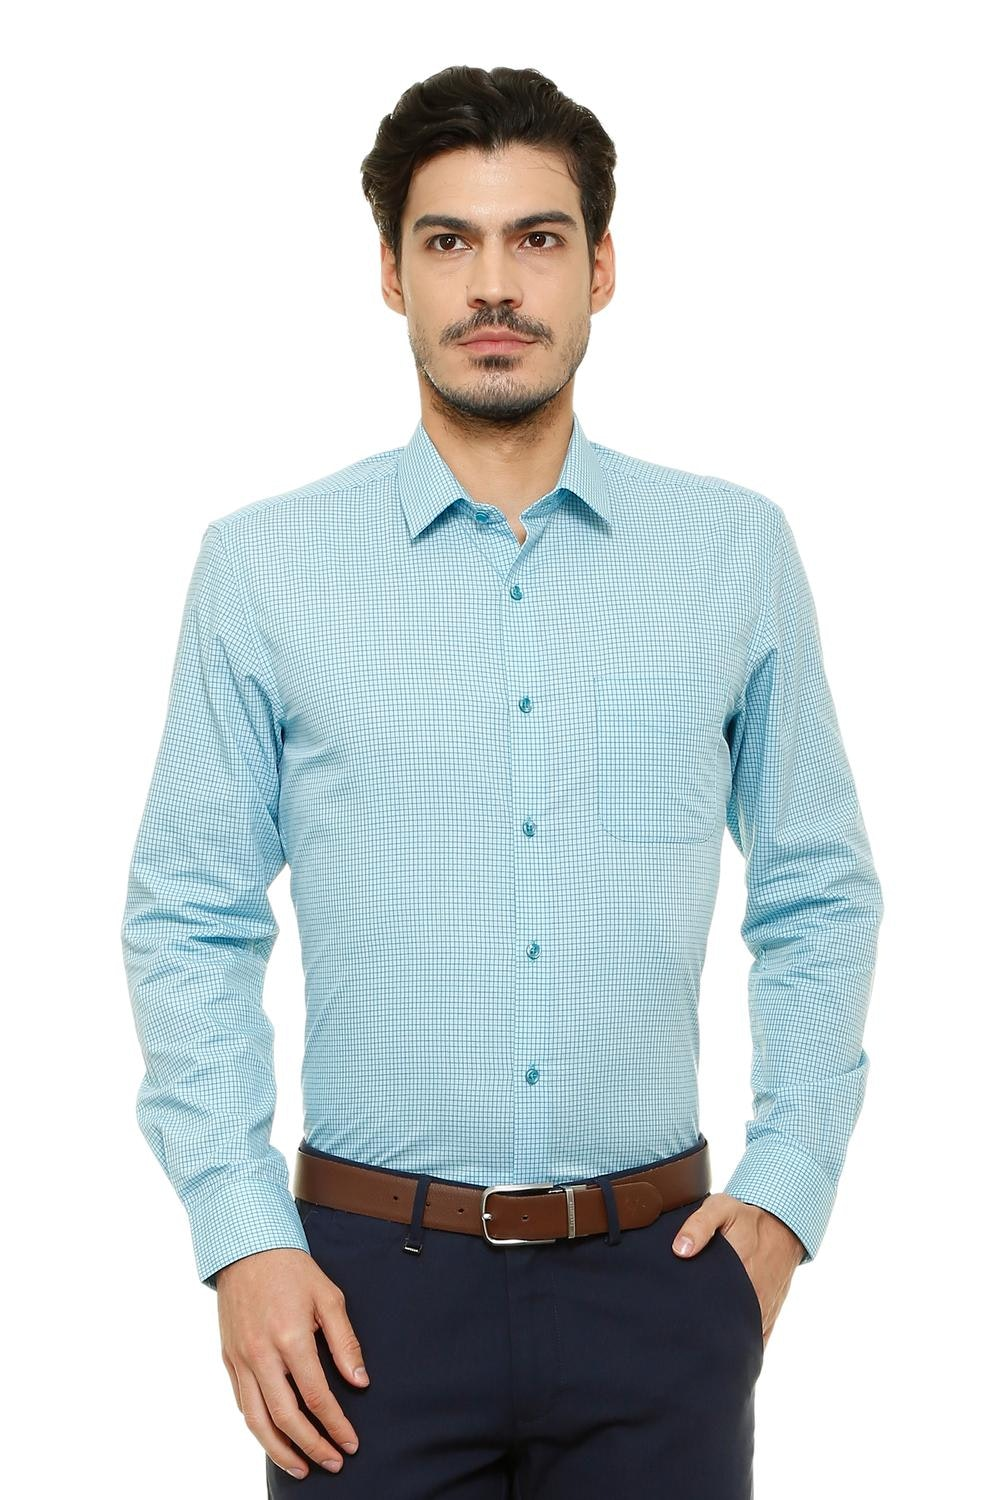 e05ce8898bb Buy Peter England Men s Shirts-Peter England Shirts Online in India ...